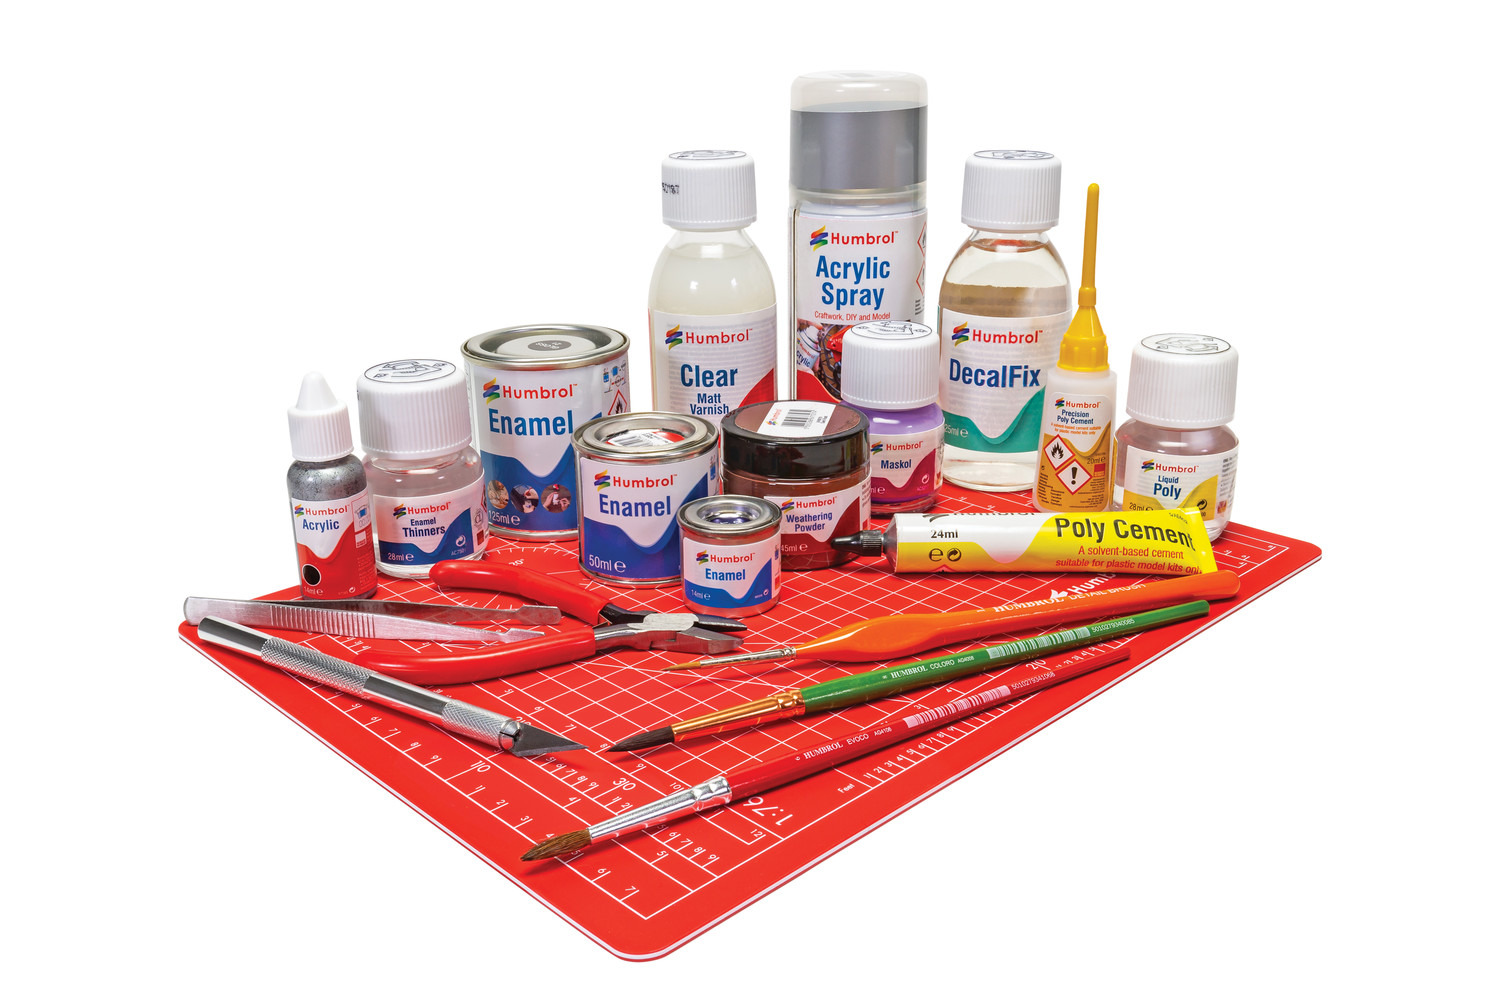 Adhesives, Brushes, Fillers & Other Accessories